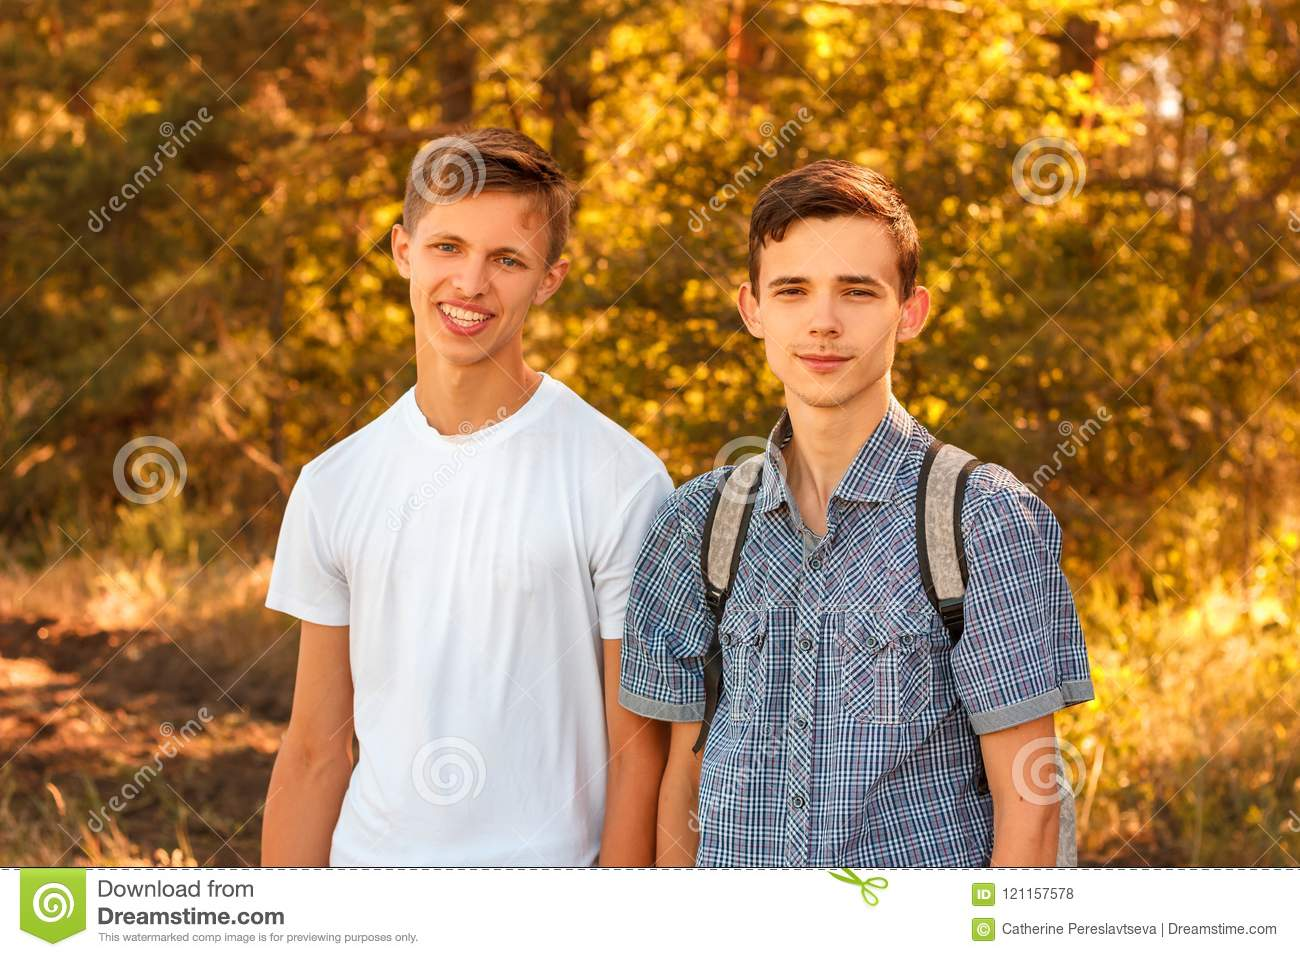 Two young men